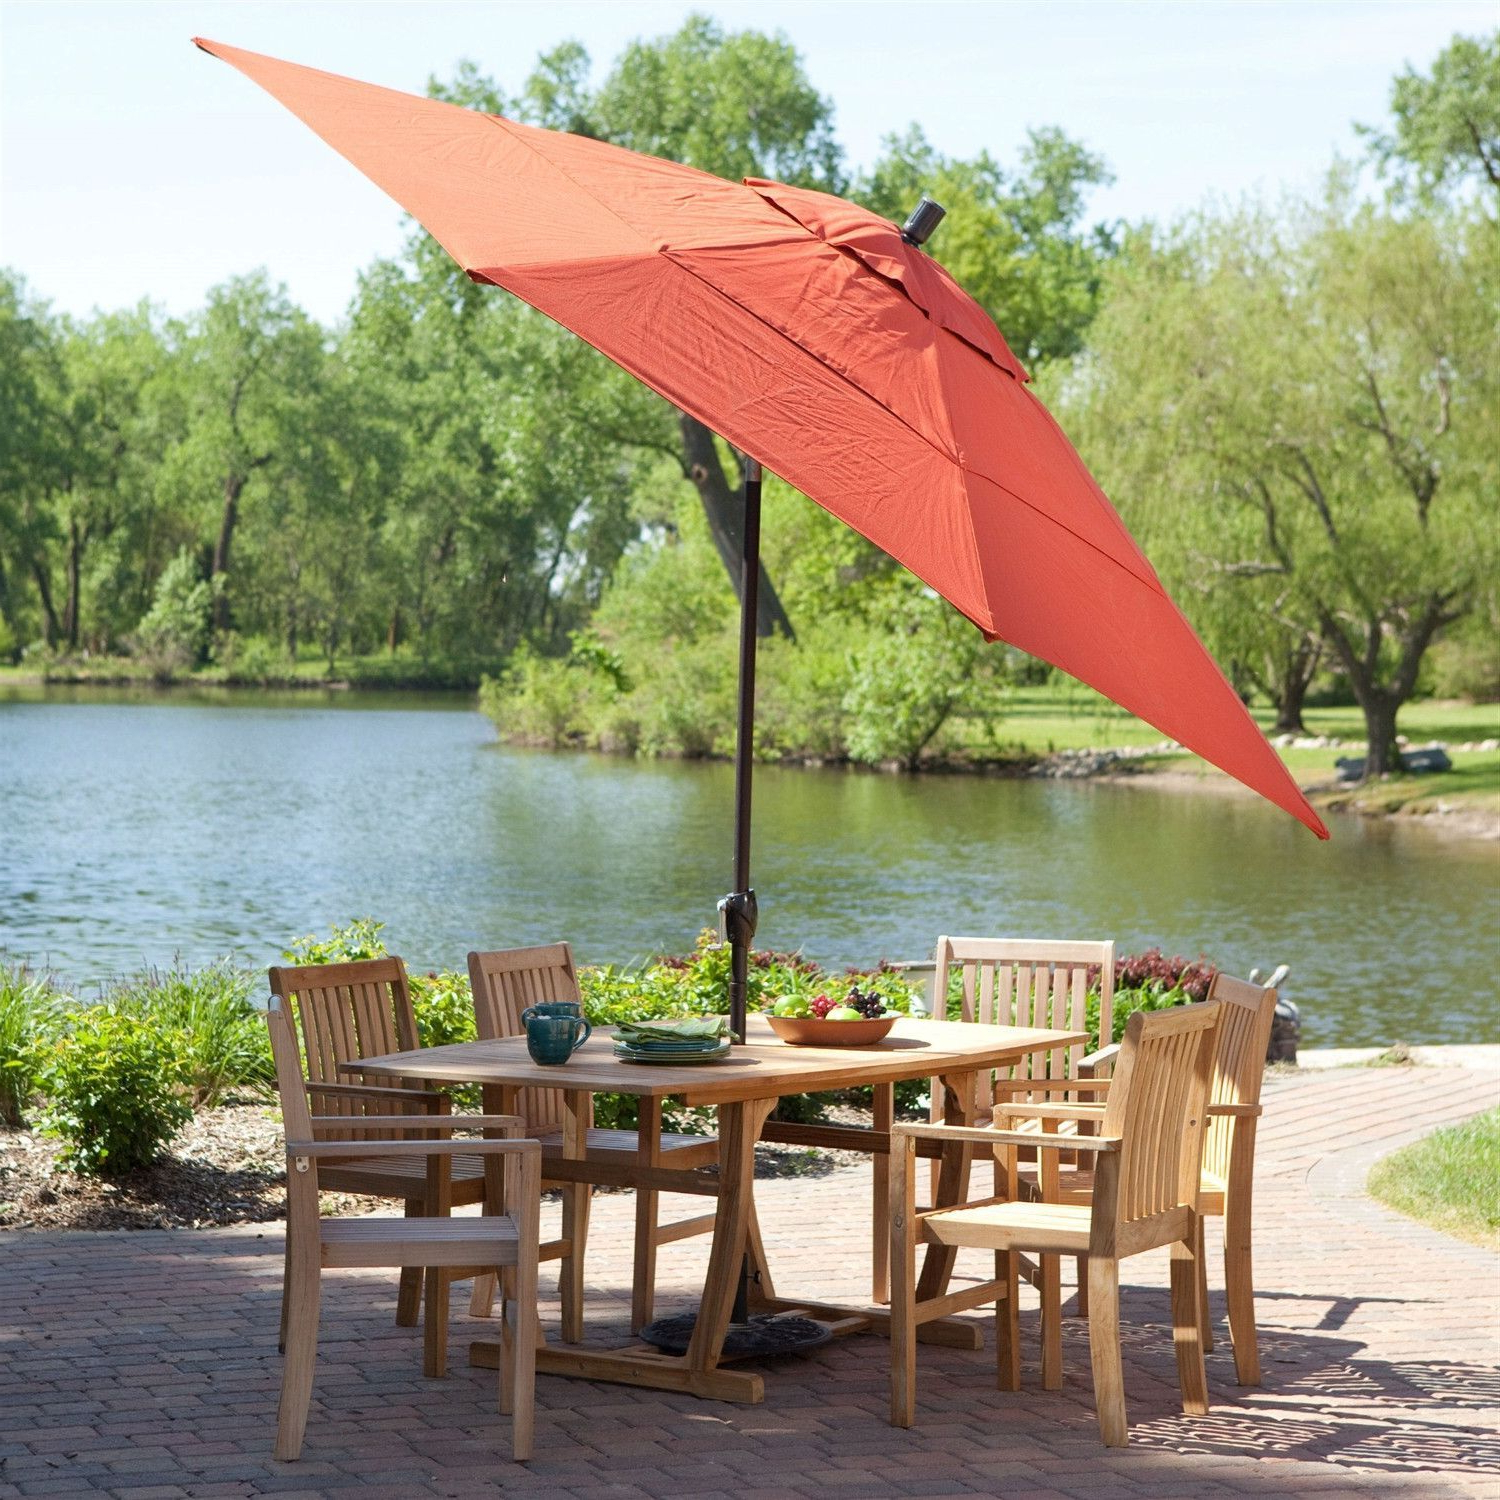 Most Recently Released Priscilla Market Umbrellas Within 11 Ft Patio Umbrella With Brick Red Canopy And Metal Pole (View 16 of 20)